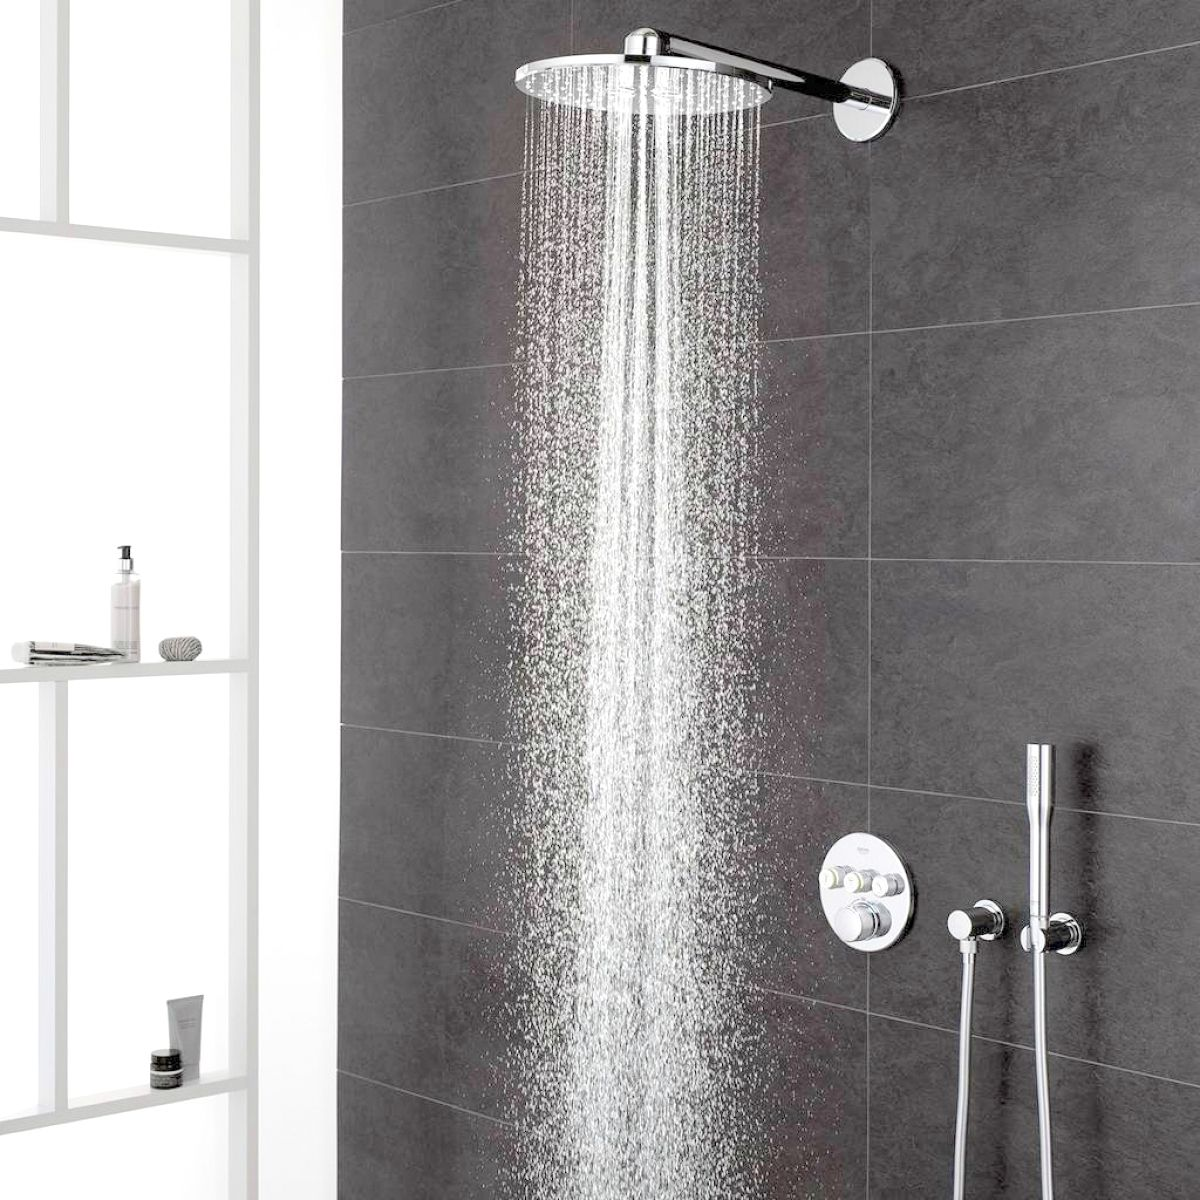 grohe grohtherm smartcontrol perfect shower system with rainshower 310 smartactive shower head. Black Bedroom Furniture Sets. Home Design Ideas